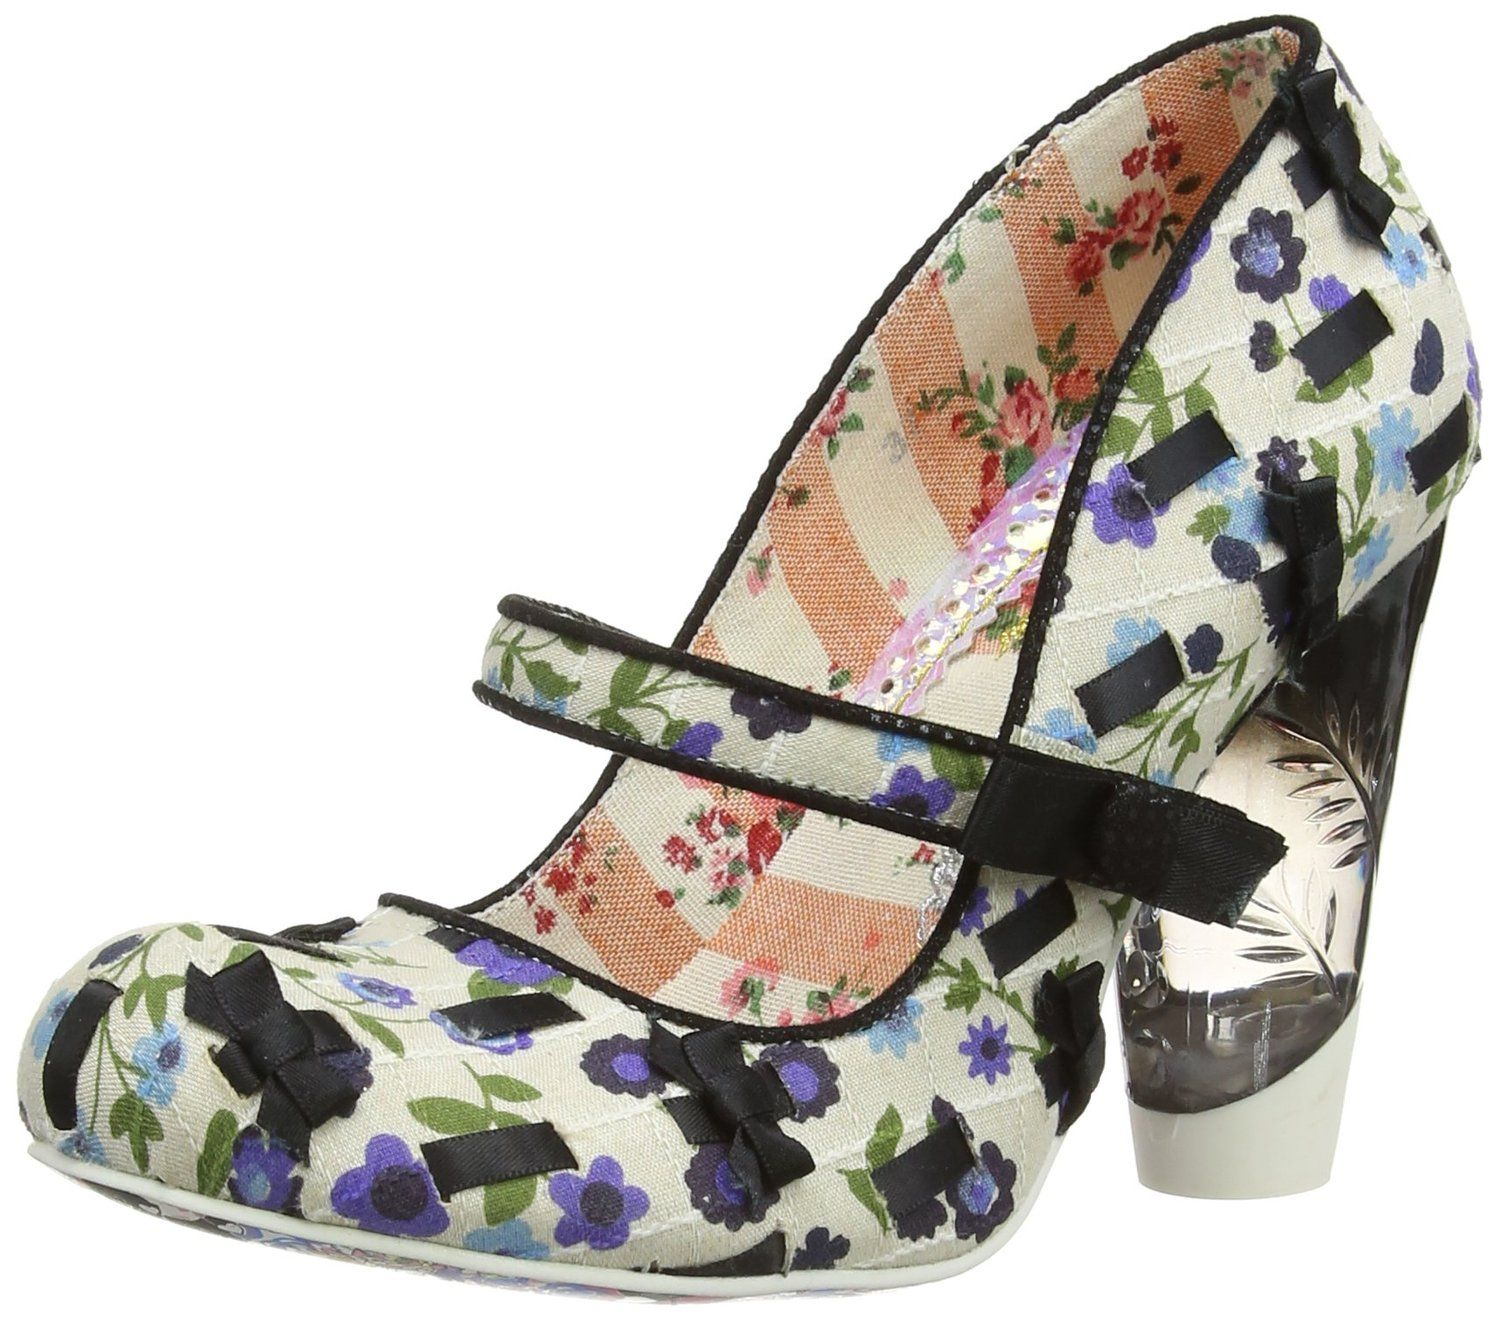 Ladies First, Escarpins Femme - Multicolore - Multicolour (Bronze), 38 EU (5 UK)Irregular Choice